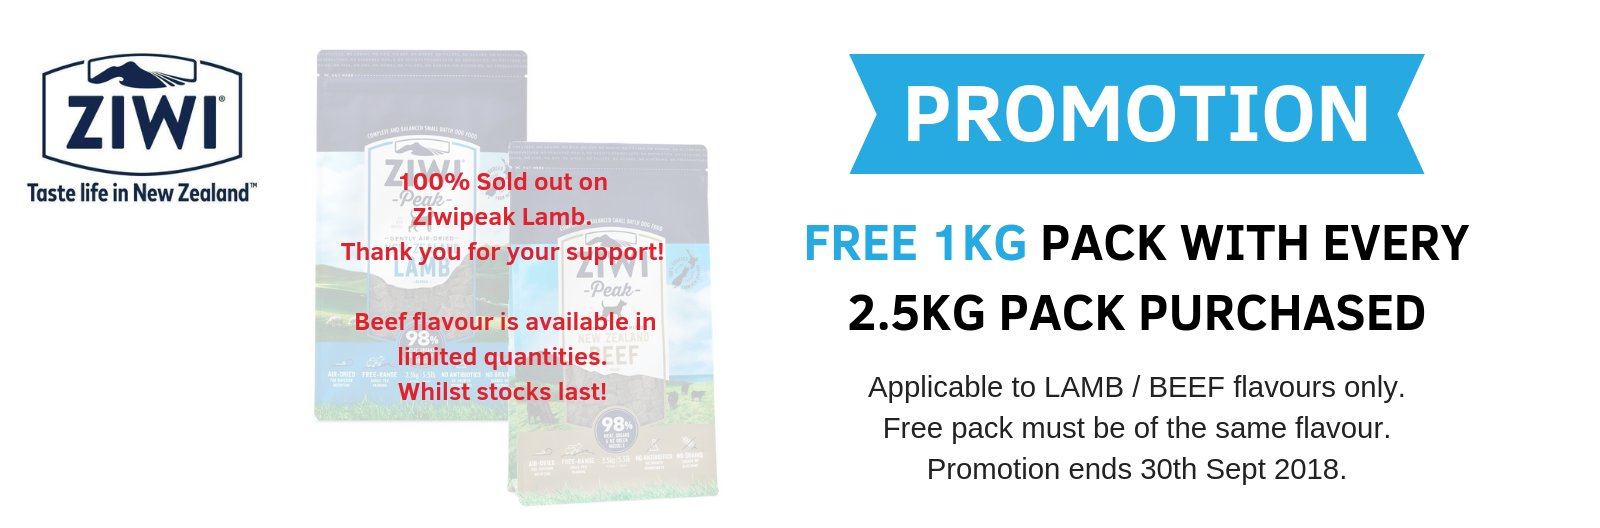 Free Ziwipeak 1kg pack with every 2.5kg purchased